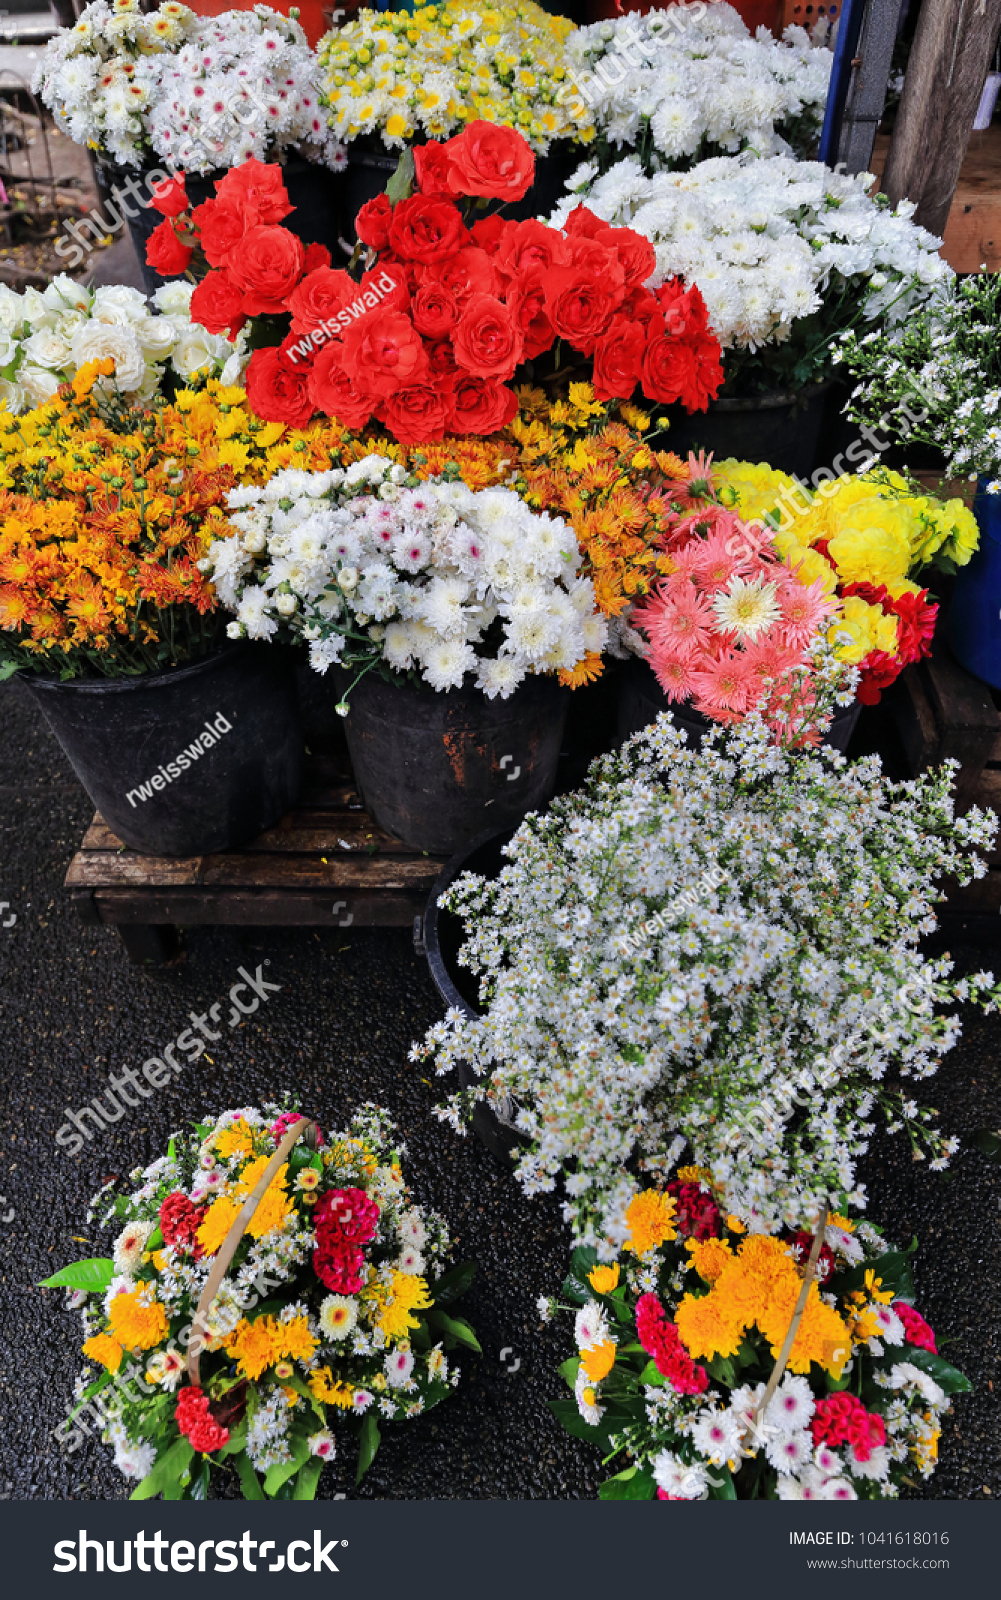 Flowers sale bouquets flowerpots flower stand stock photo edit now flowers for sale bouquets and flowerpots in a flower stand placed in the public izmirmasajfo